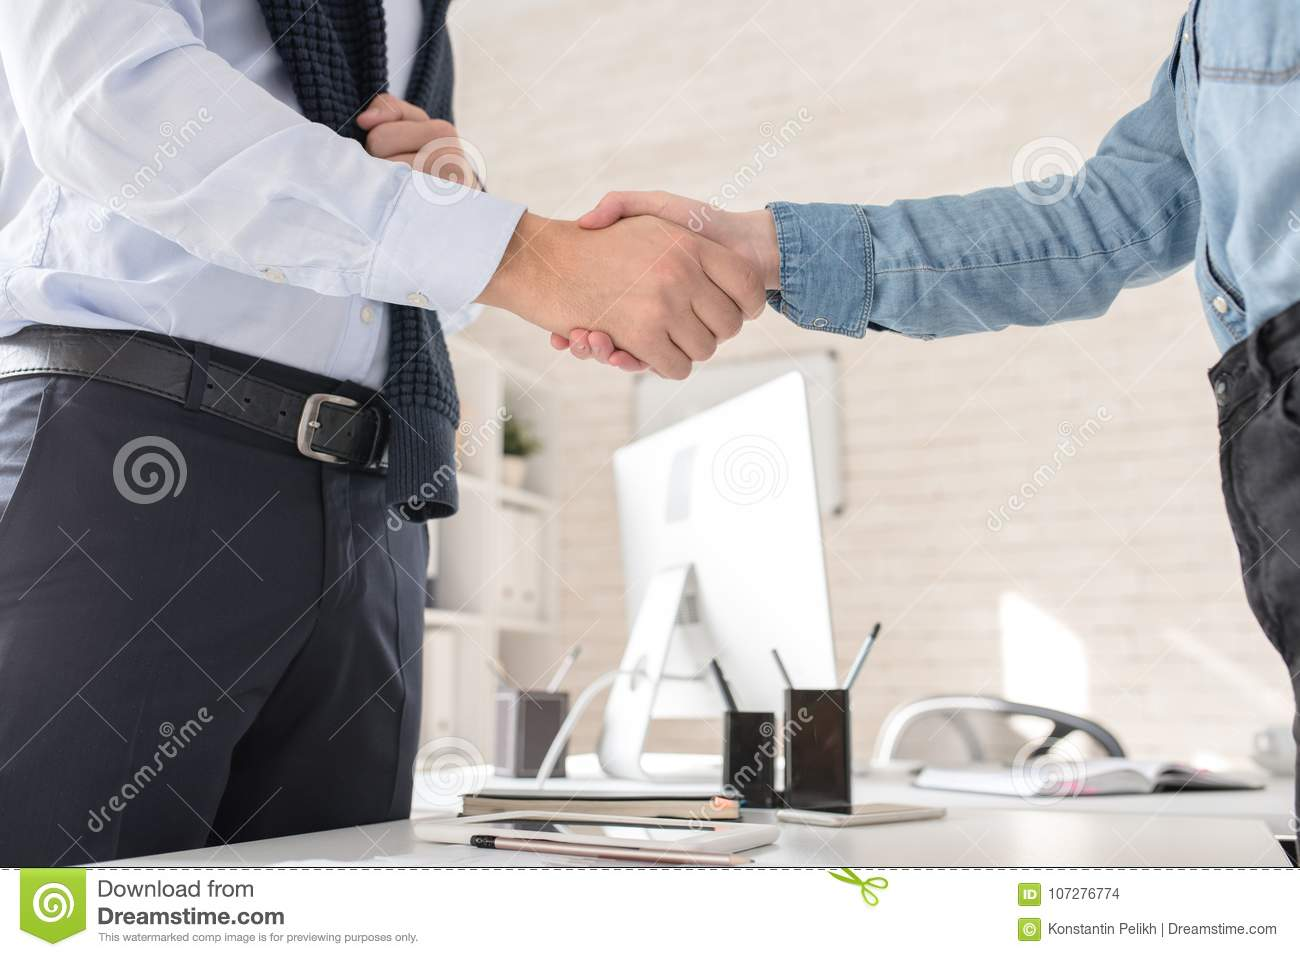 Business Partners Shaking Hands over Table